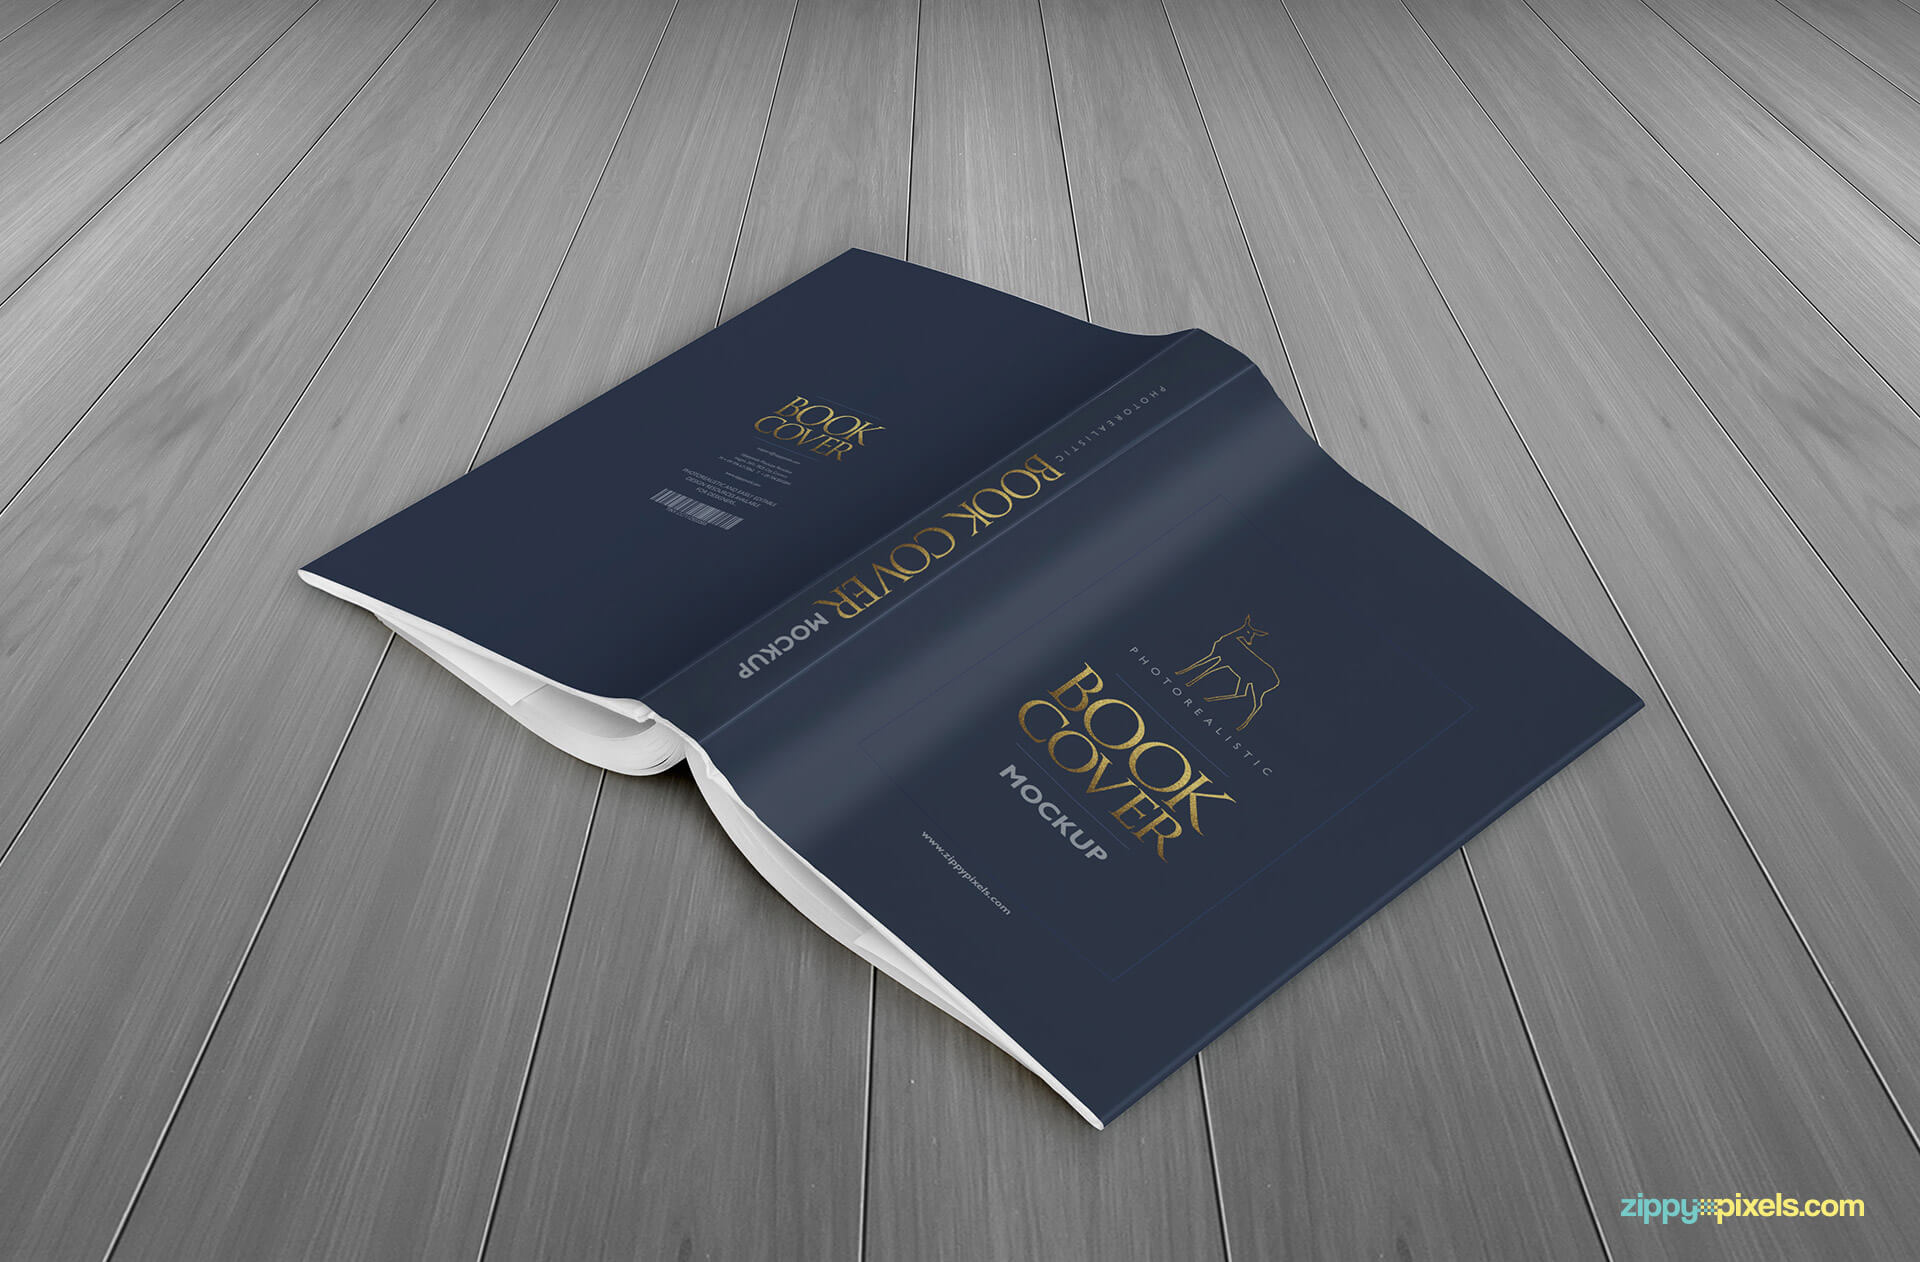 A book lying face down shoing full book dust cover design in this book mockup